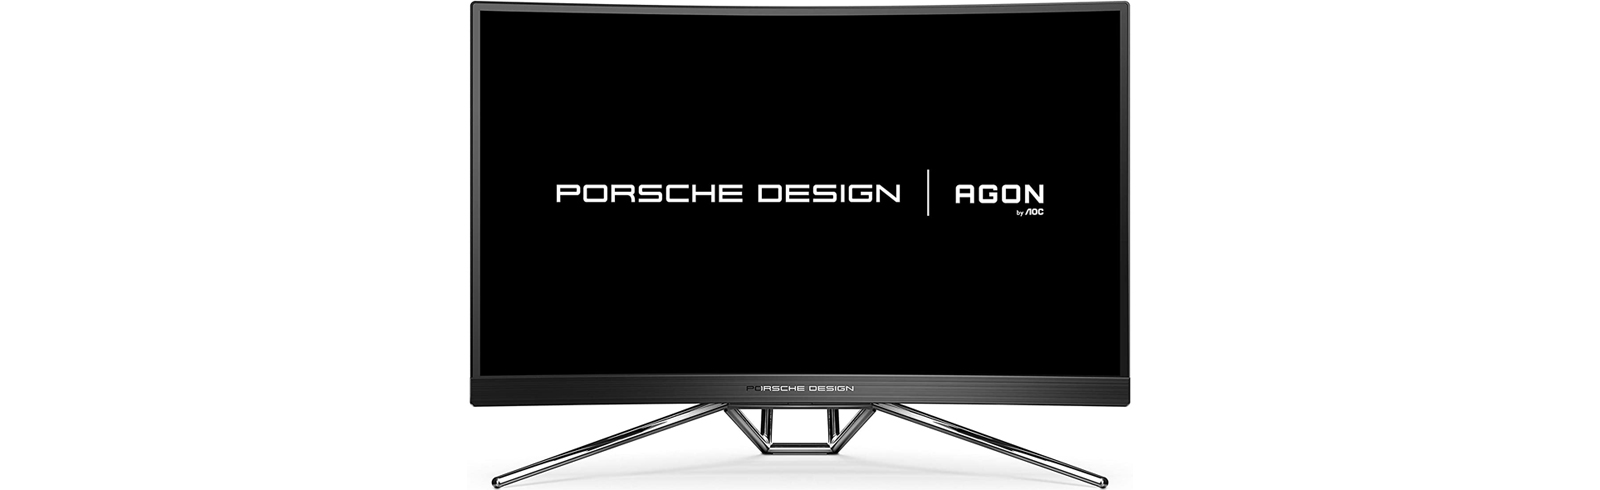 Porsche Design and AOC launch the PD27 AGON gaming monitor with a curved 240Hz QHD display